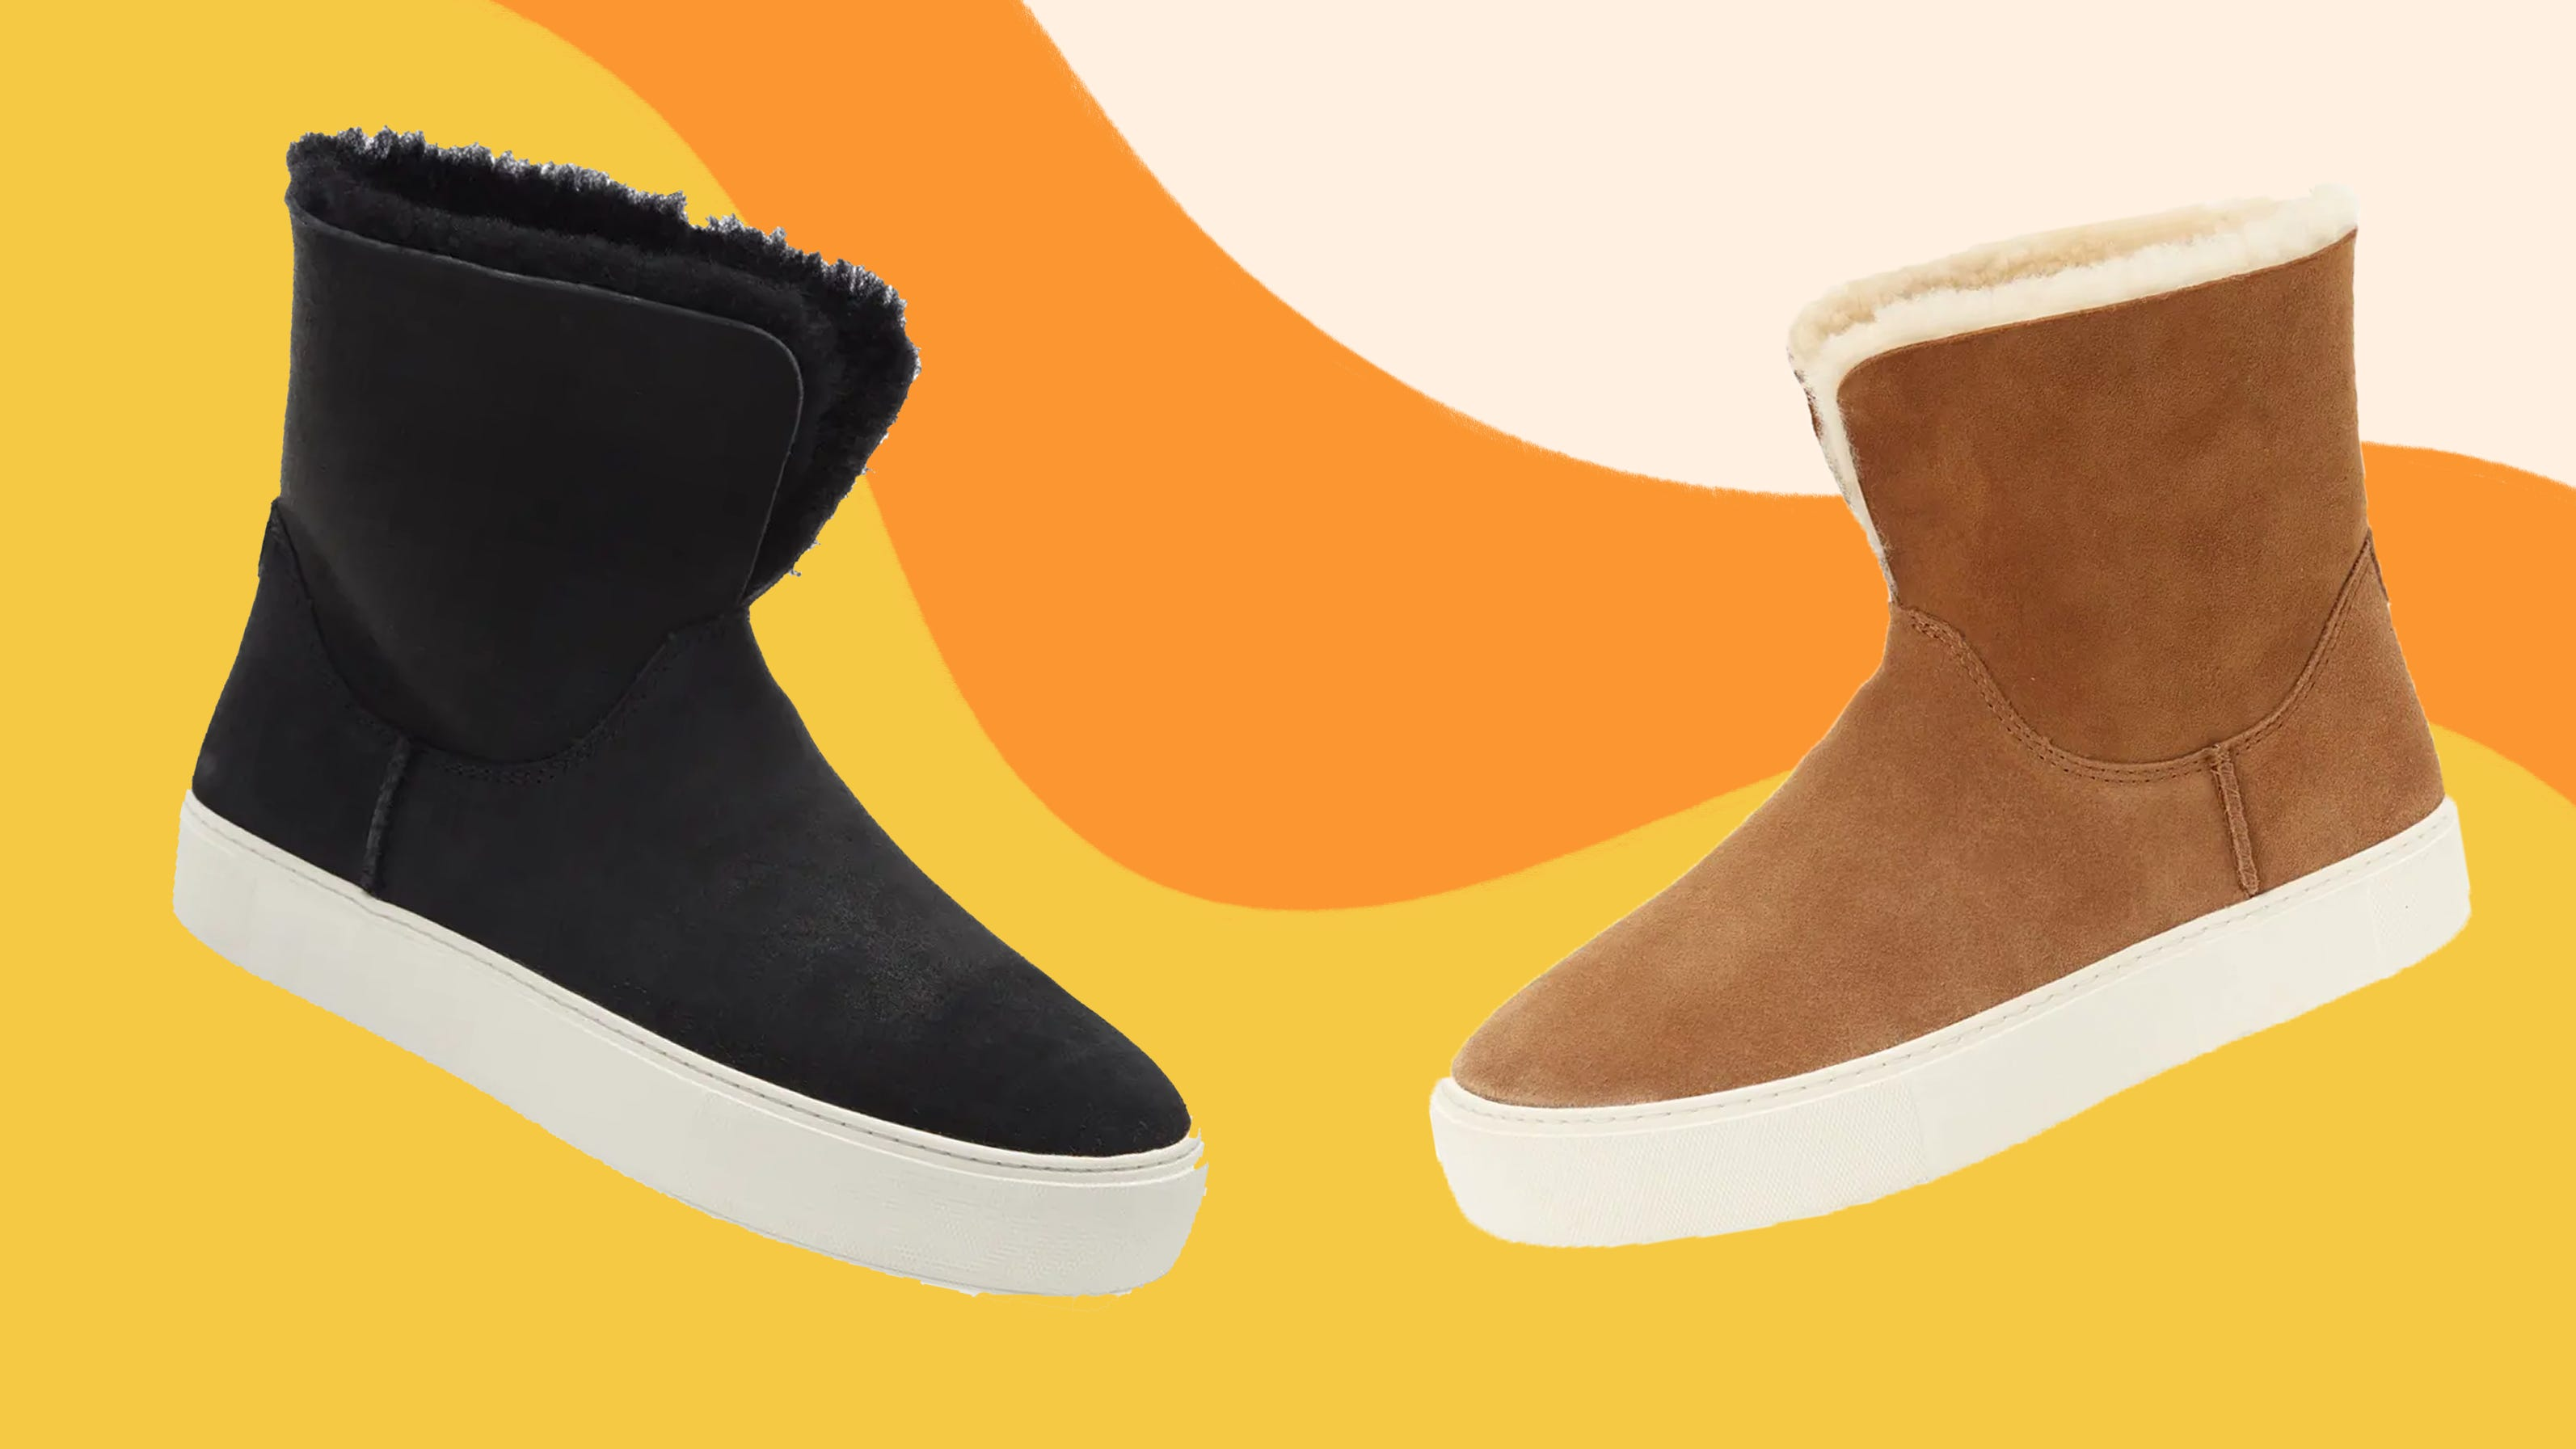 Shop massive discounts on UGG boots at the Nordstrom Anniversary Sale